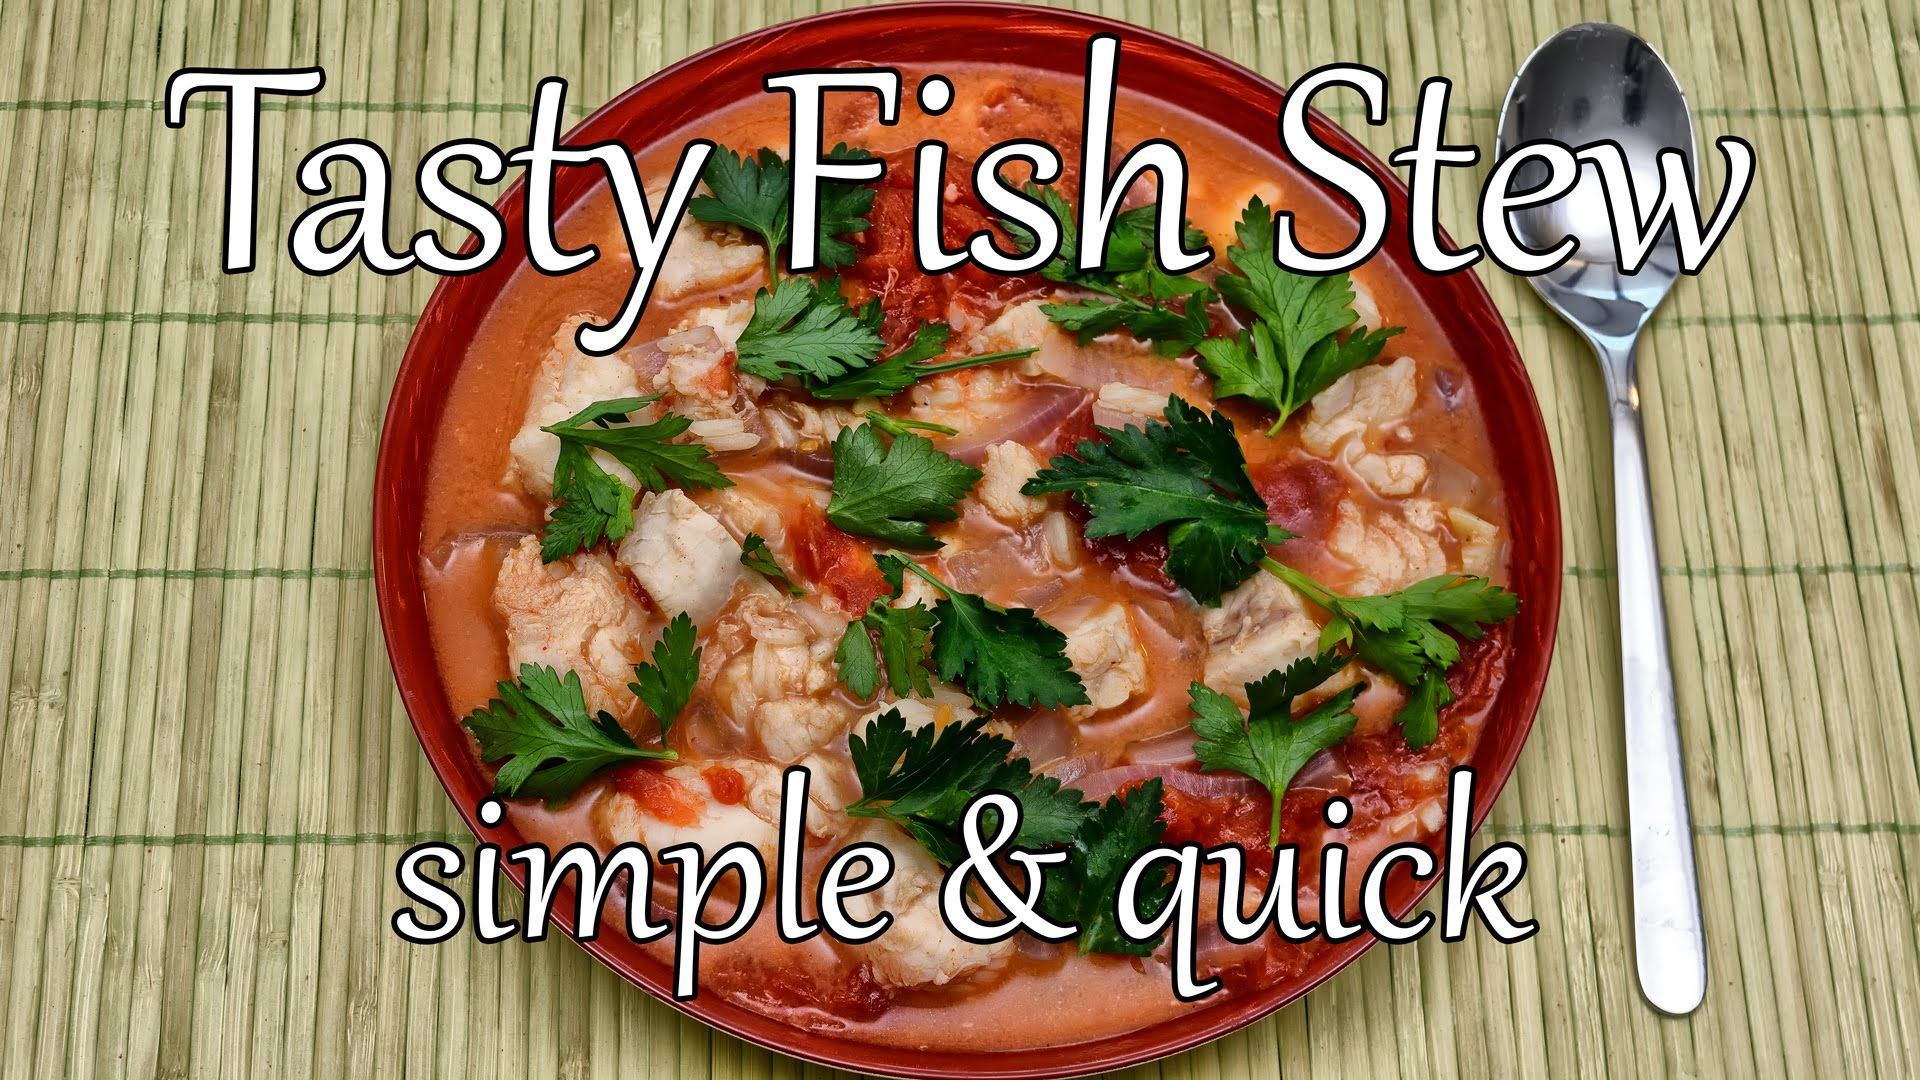 This simple & tasty fish soup recipe takes under 30 min to make and is inspired by Halászlé, a.k.a. Hungarian Fisherman's Stew. It is high in protein and pac...